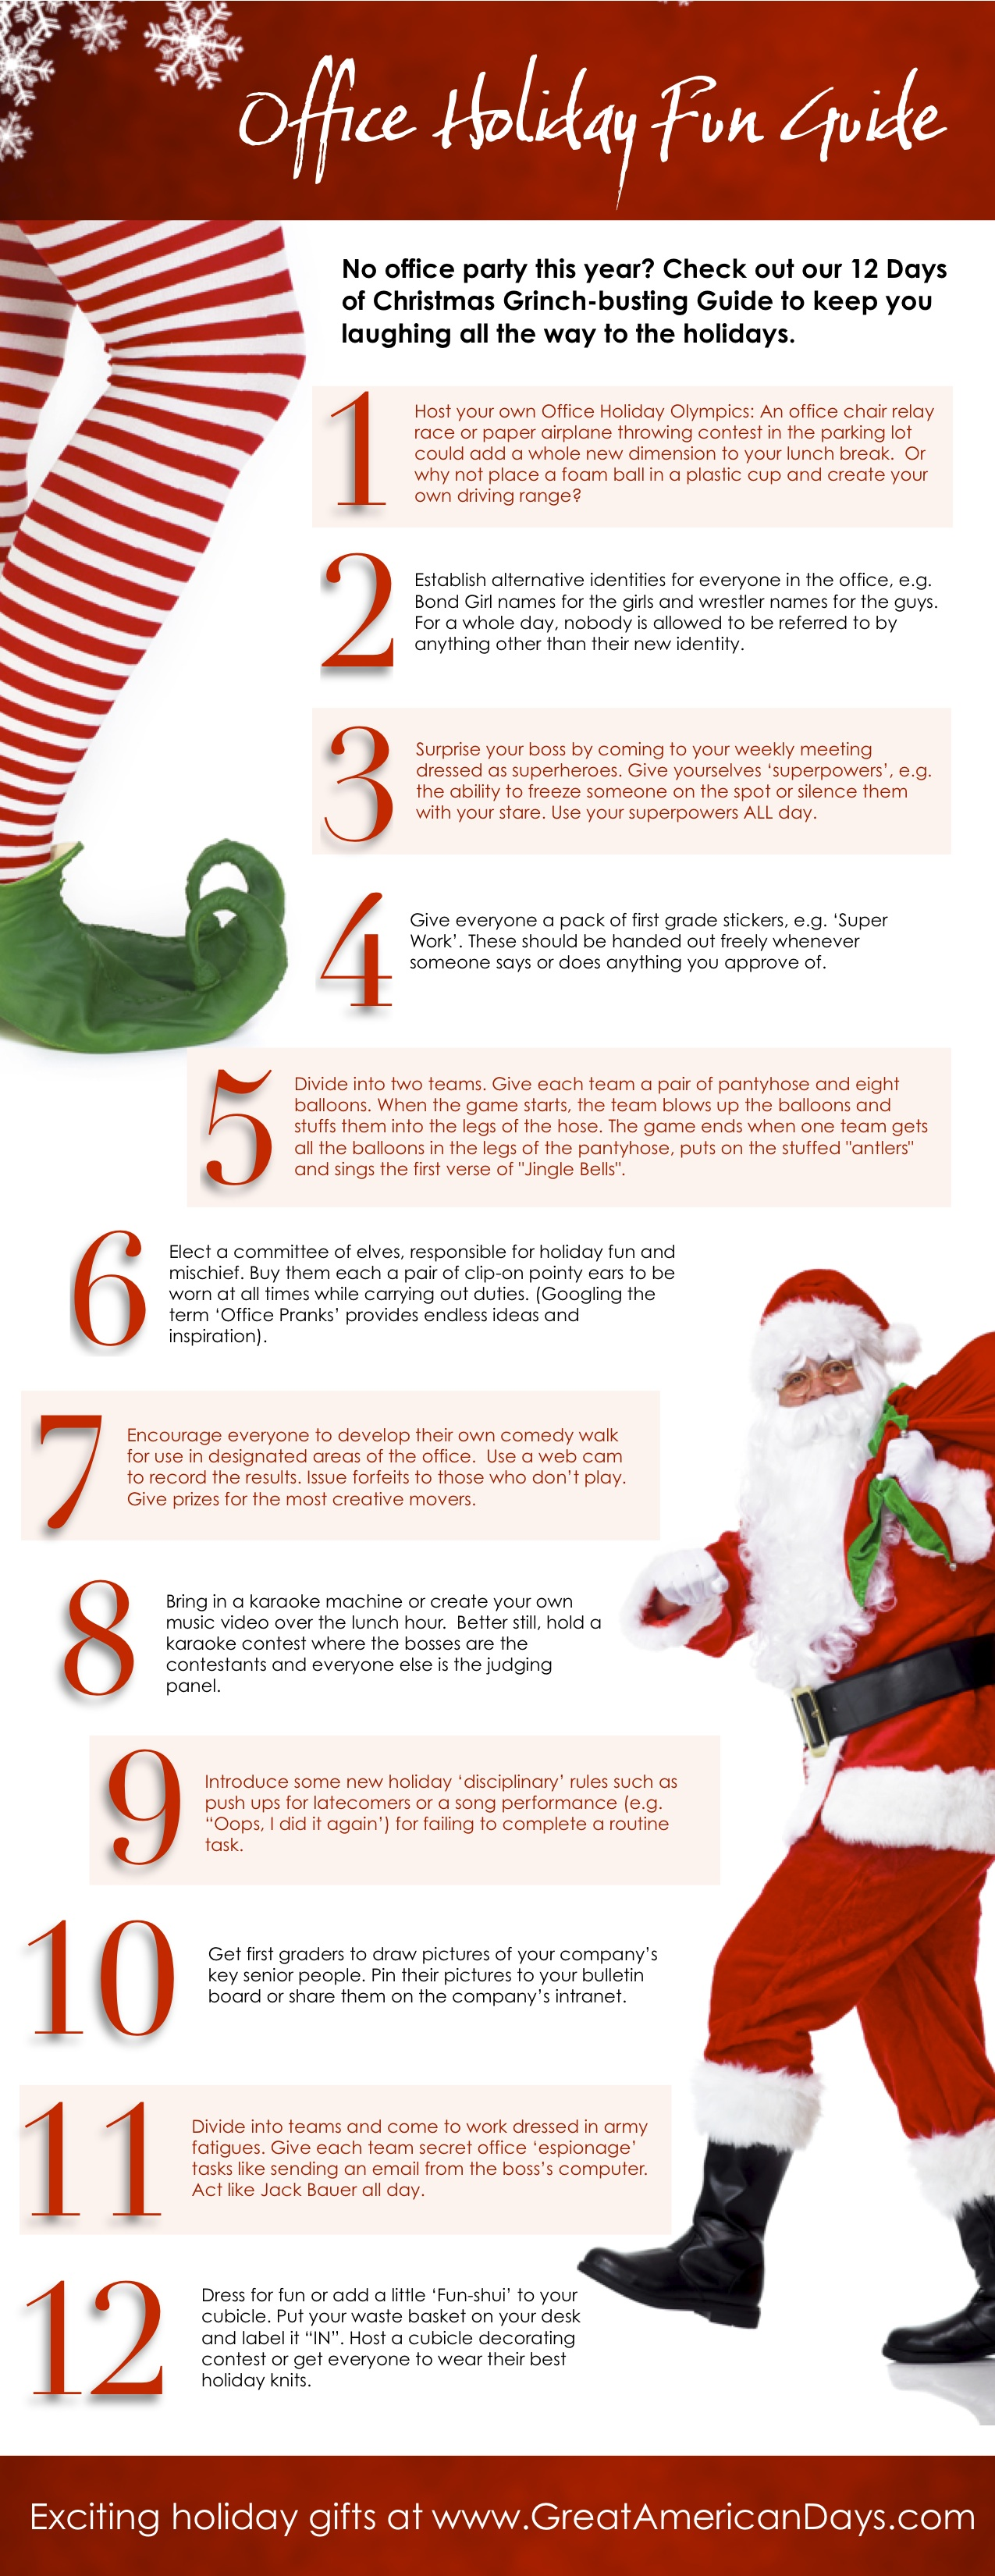 10 holiday decorating ideas for your office cubicle.htm are we having fun yet  a new holiday survey explores the feel good  are we having fun yet  a new holiday